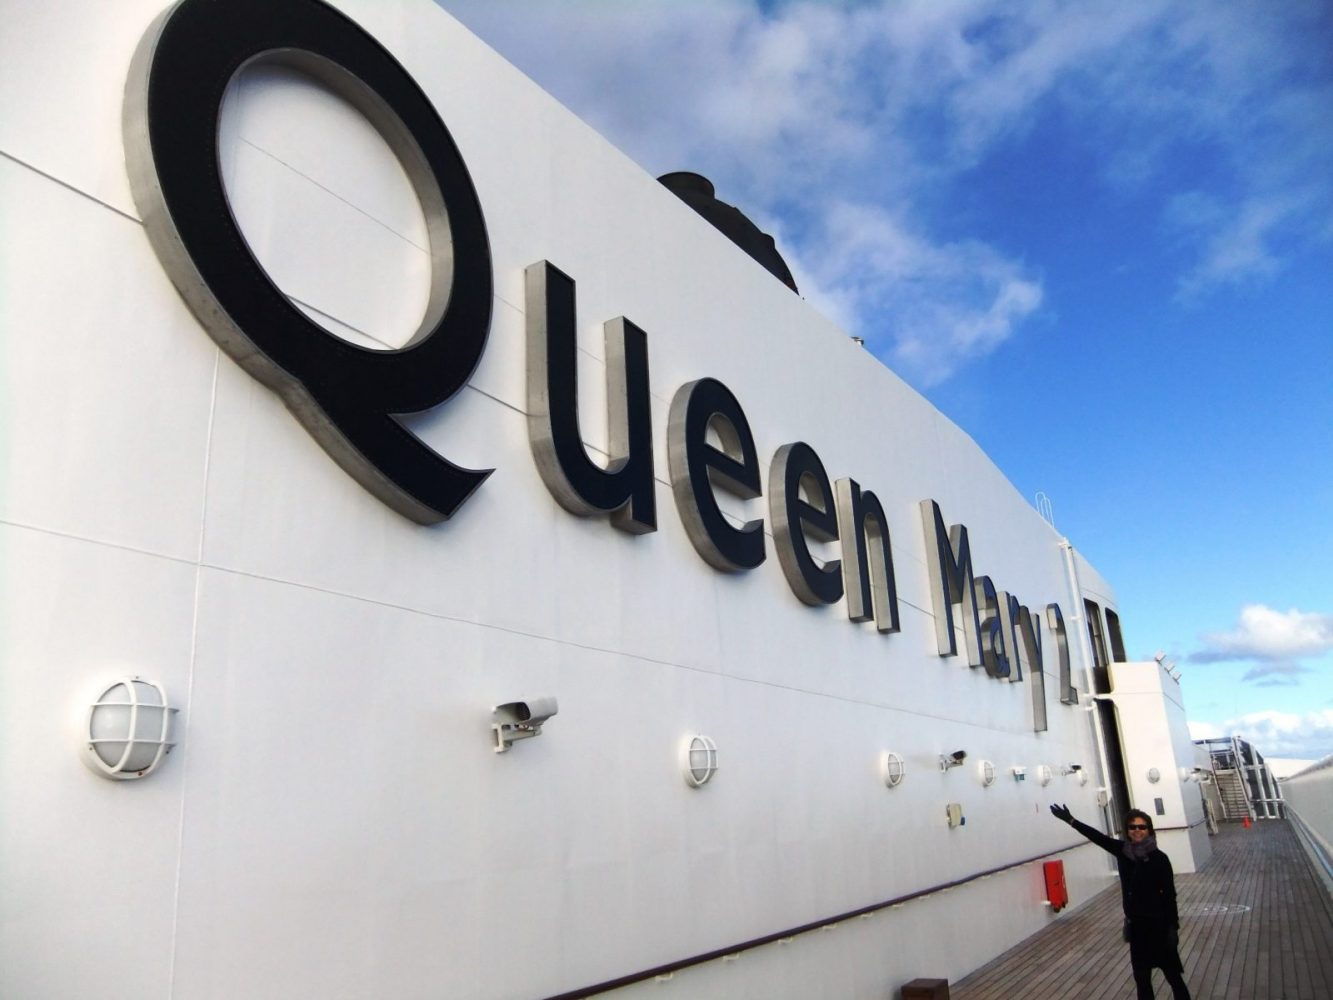 The Queen Mary: On board in the future